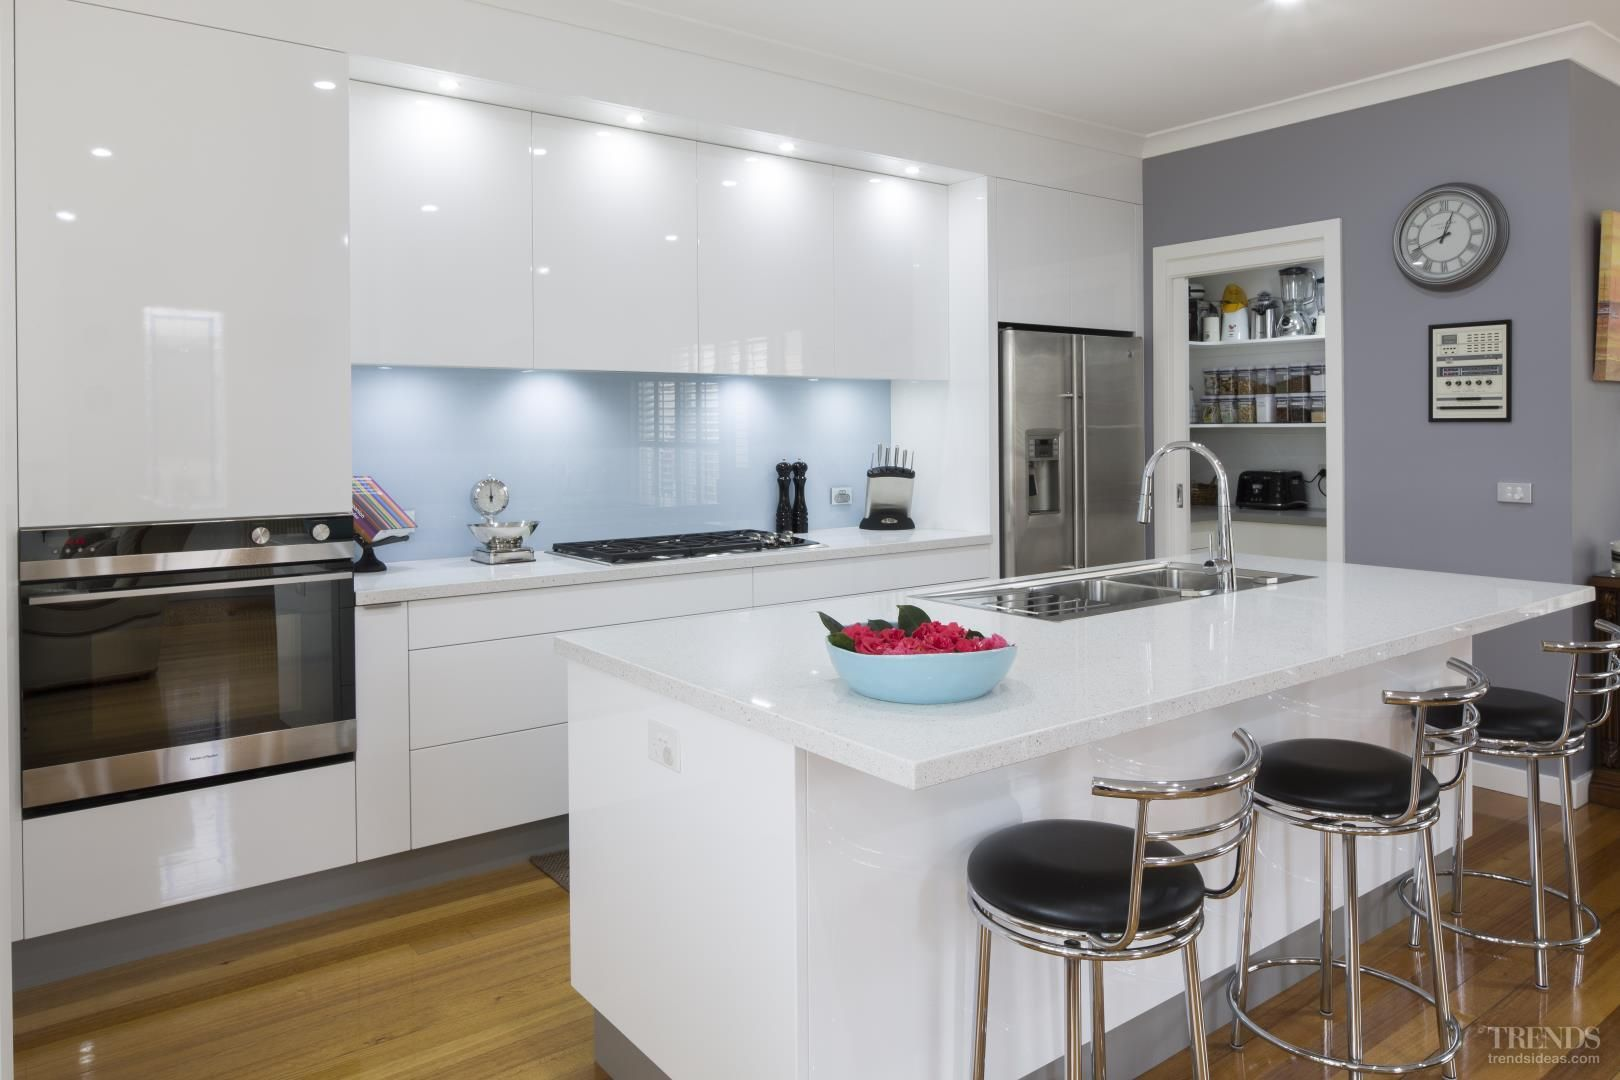 Sleek Contemporary White Kitchen With Pale Blue Glass